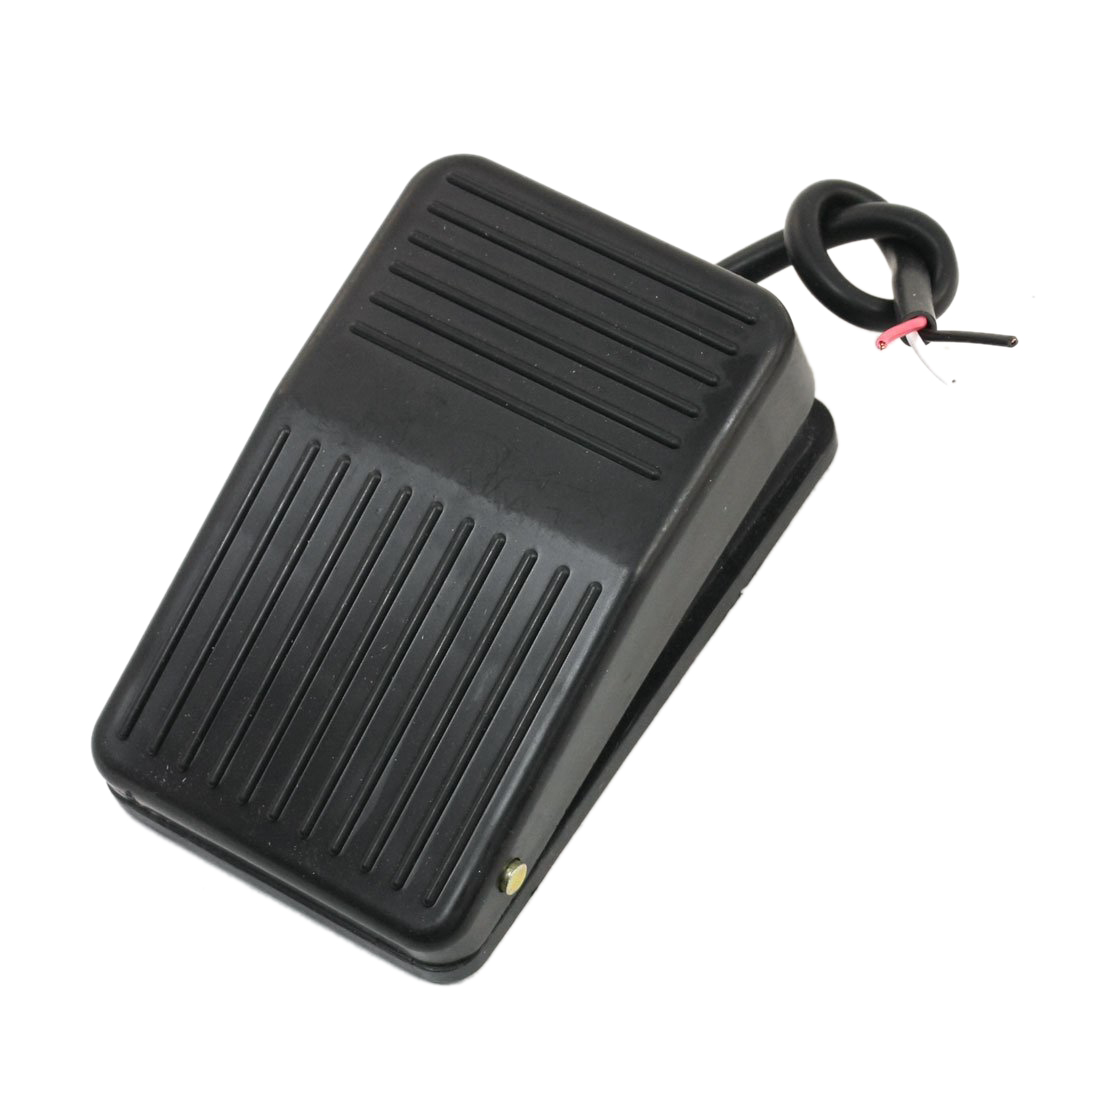 IMC Hot SPDT Nonslip Metal Momentary Electric Power Foot Pedal Switch